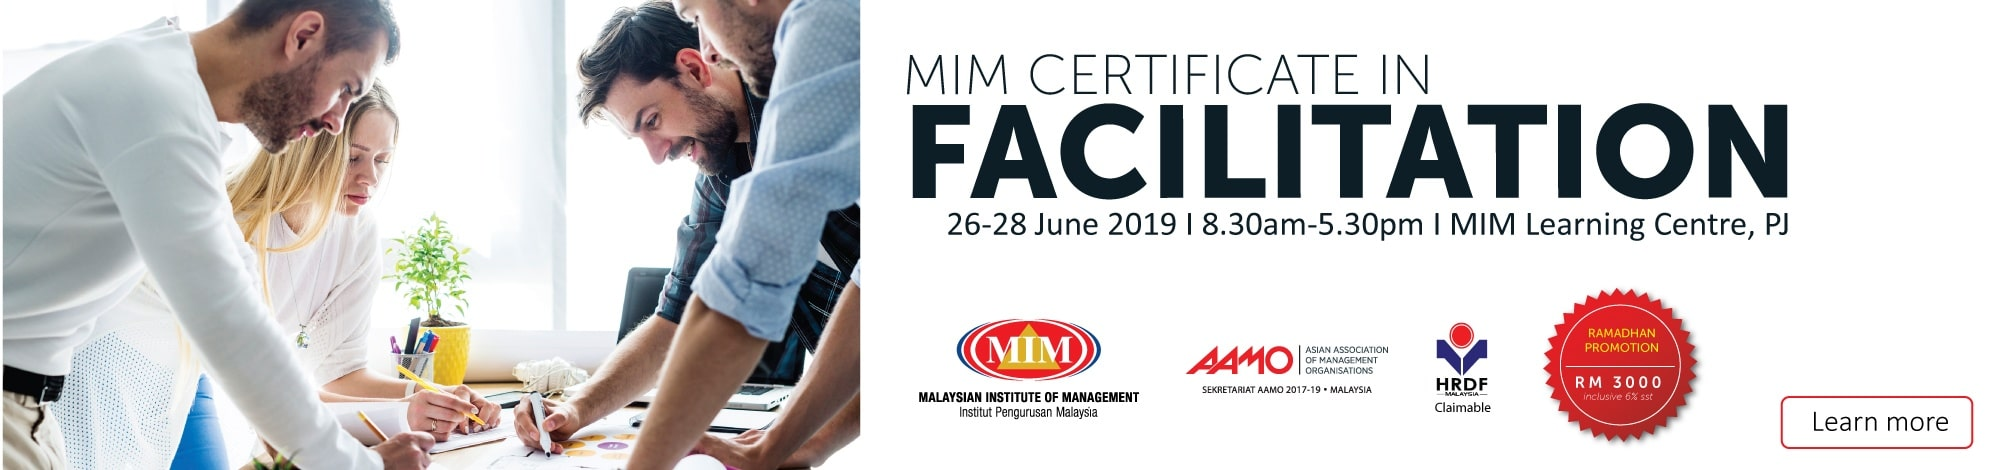 MIM-CERTIFICATE-IN-FACILITATION_Banner